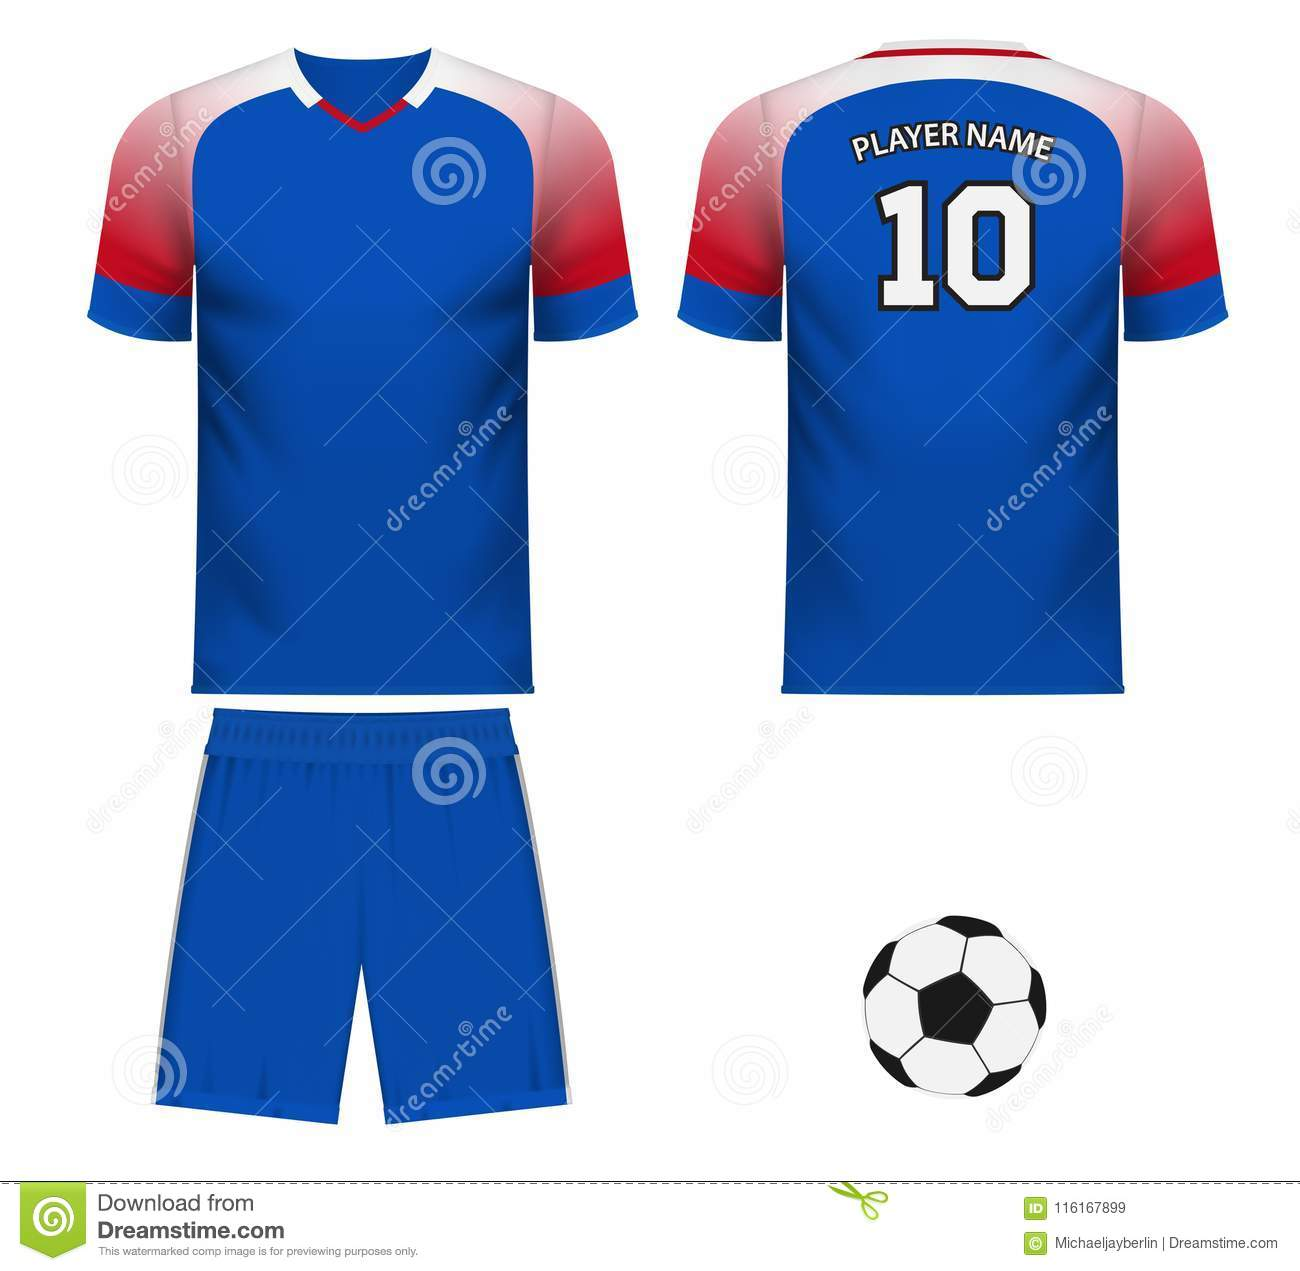 3a14a9d42b8 Iceland national soccer team shirt in generic country colors for fan apparel